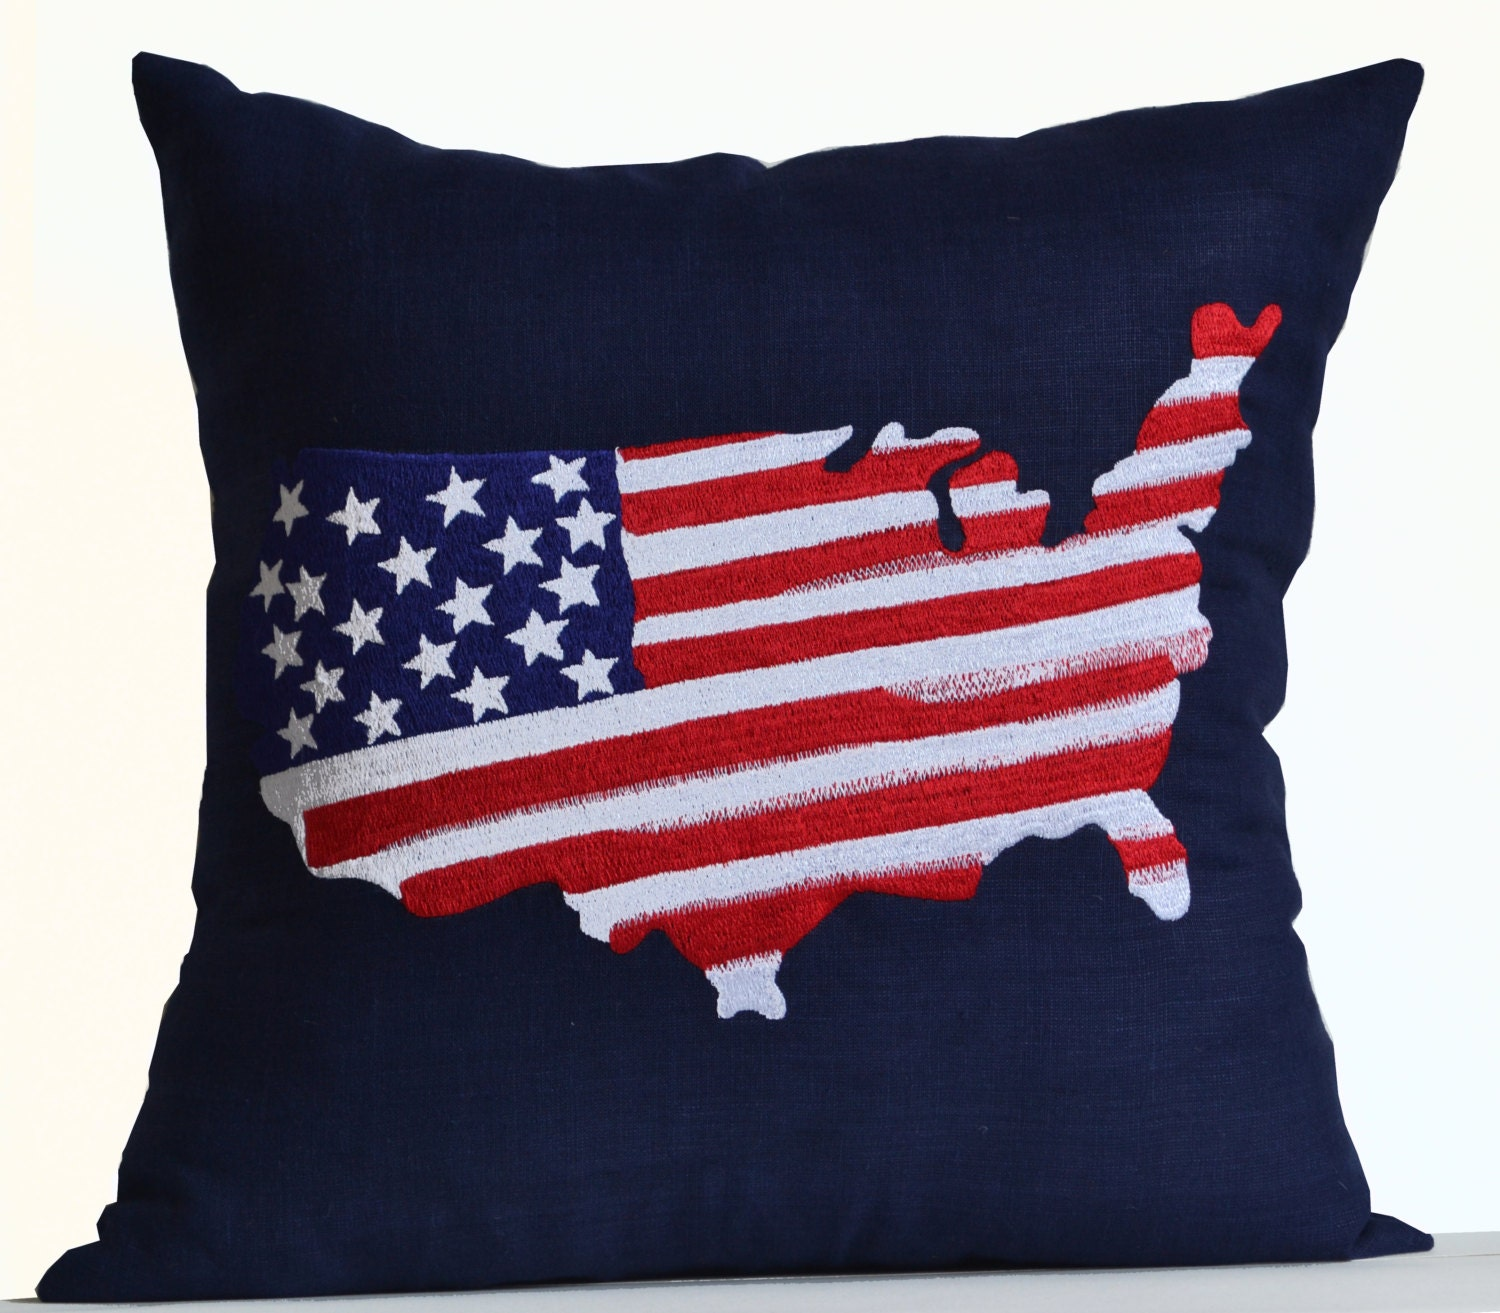 US Map Decorative Throw Pillow Cover Navy Blue Linen Cushion